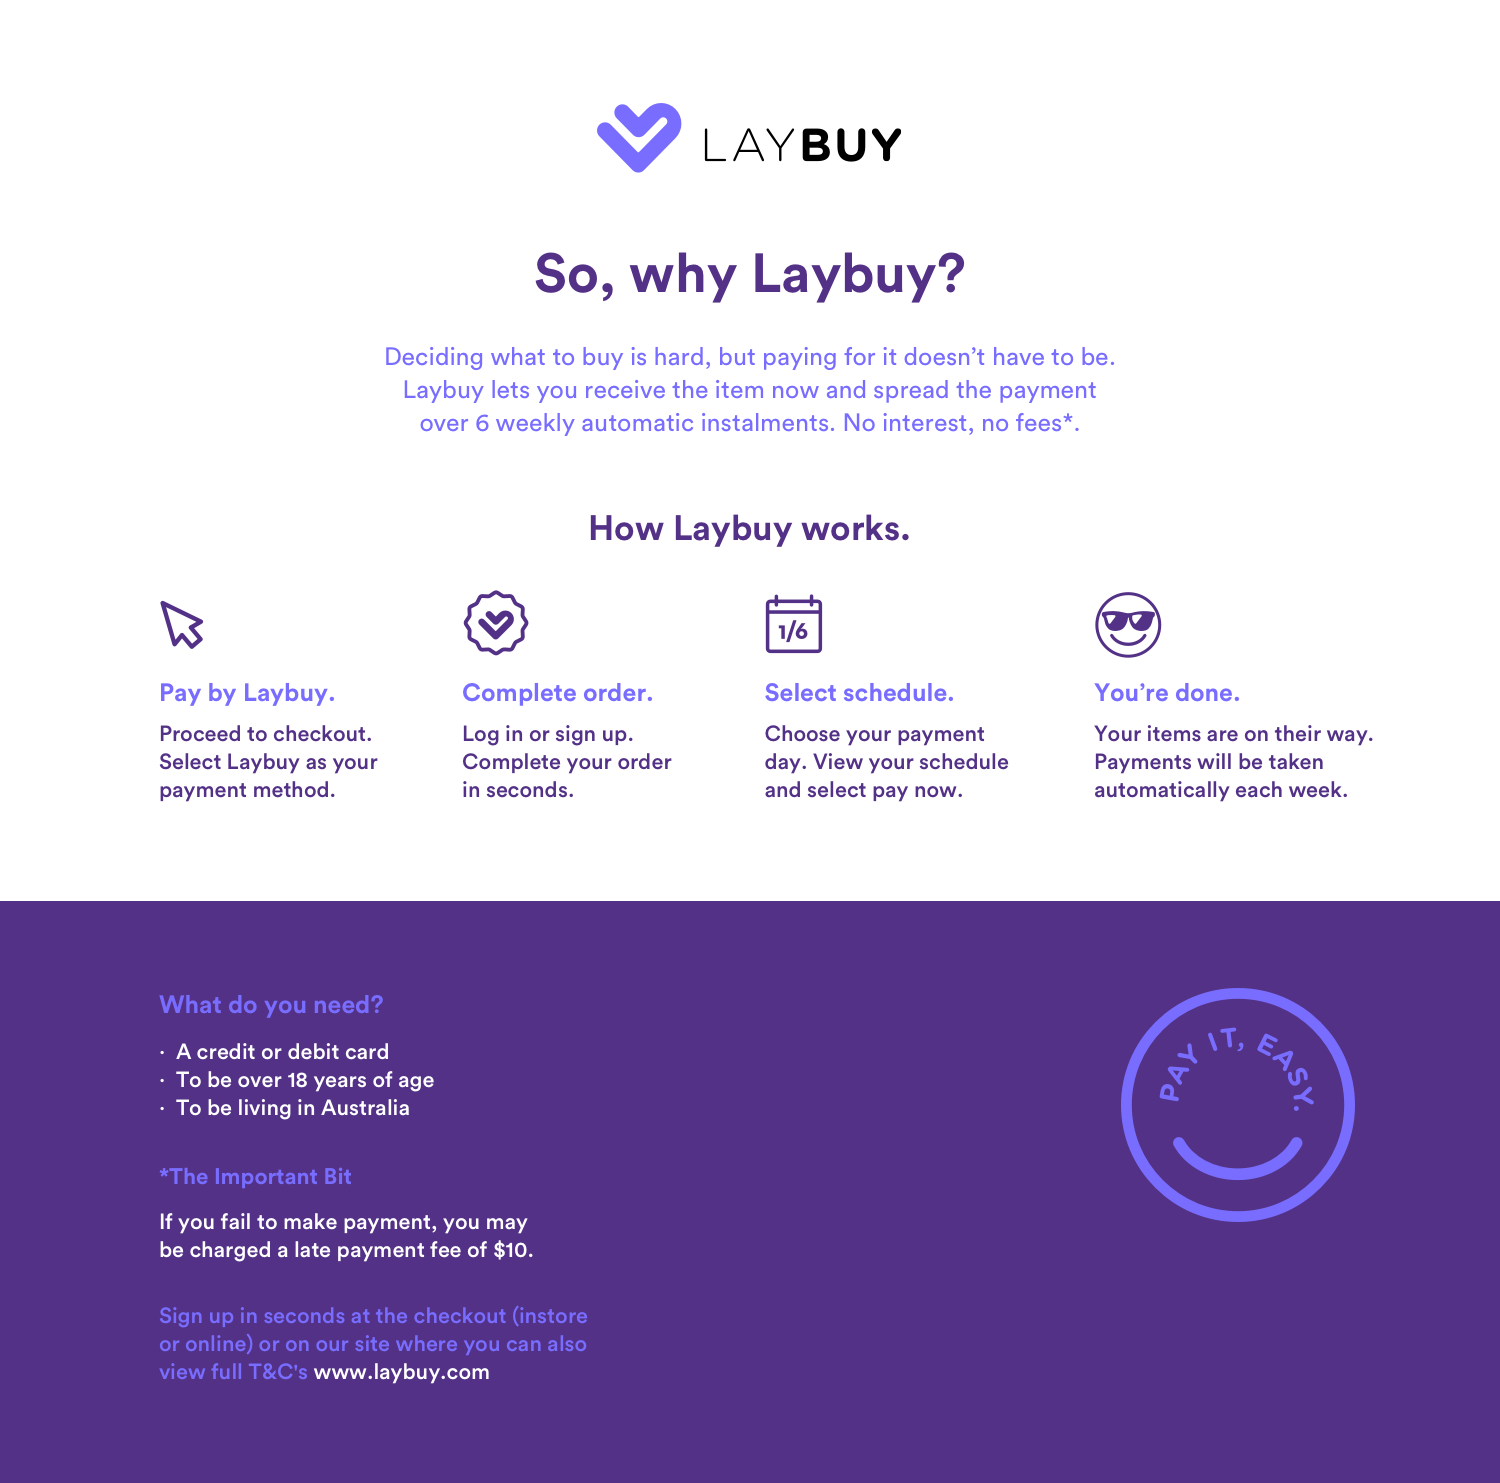 buy now, pay later with LayBuy in 6 weekly instalments